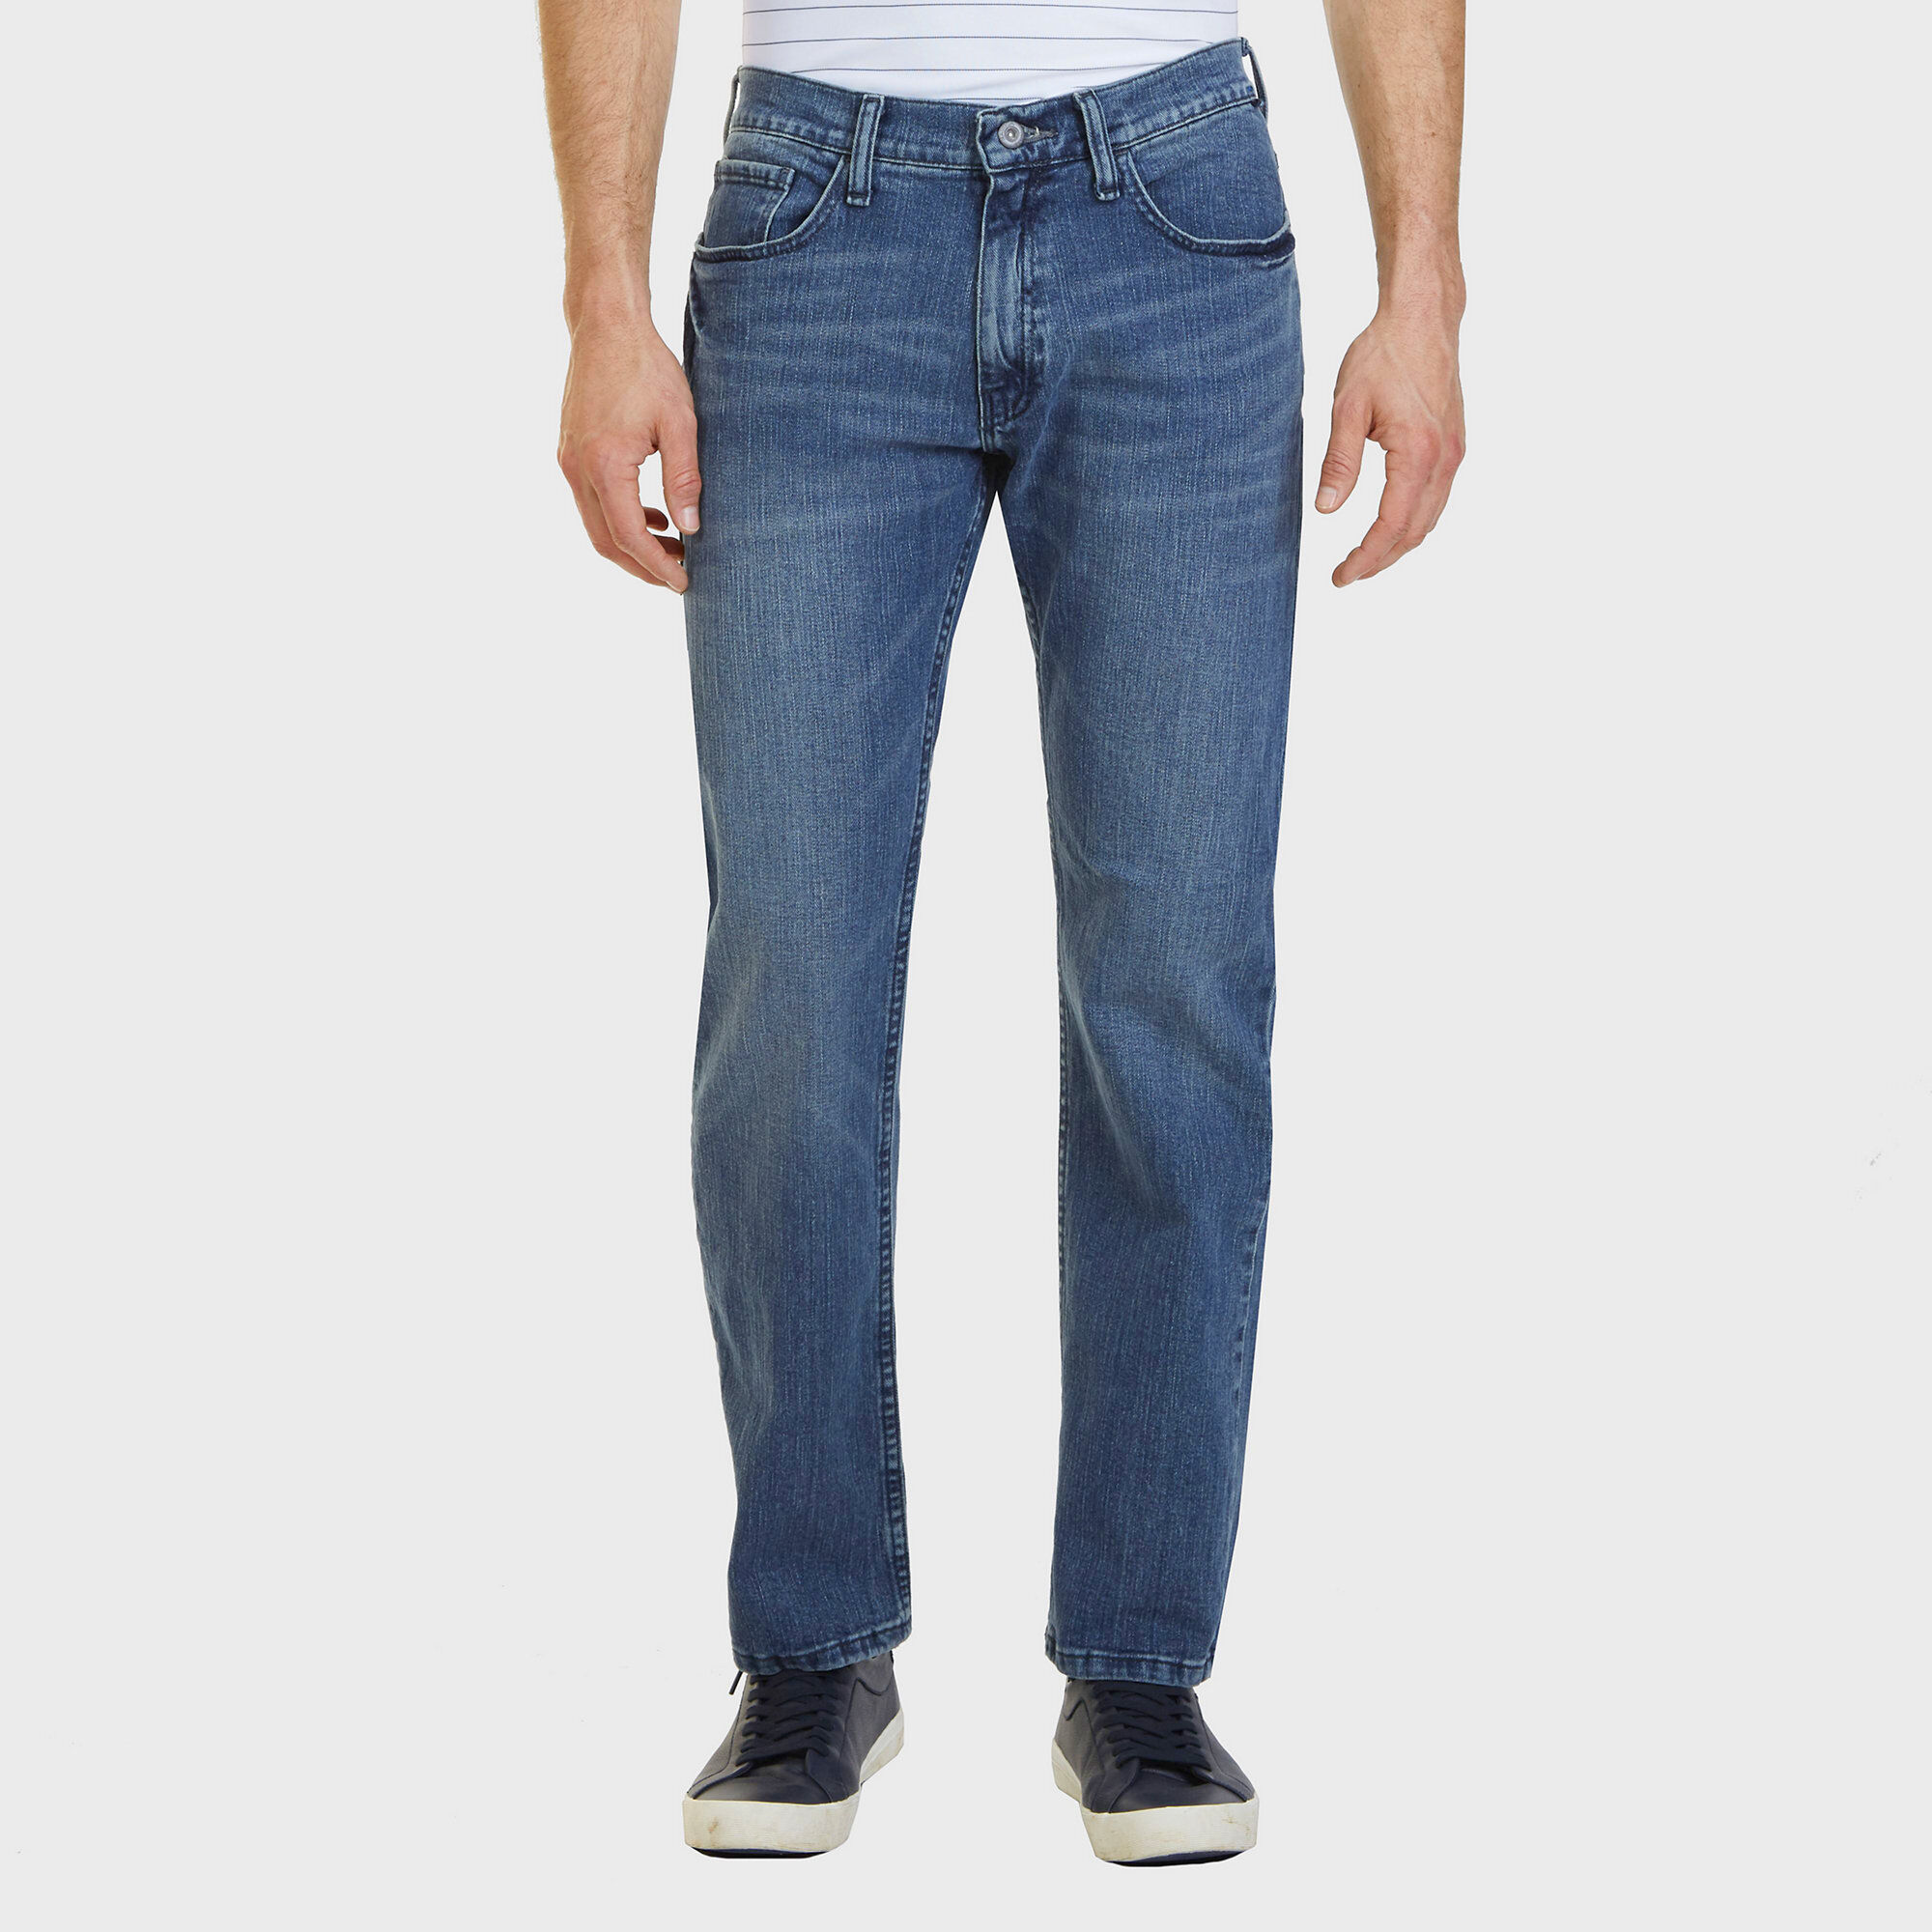 Nautica Mens Big & Tall Relaxed Fit Gulf Stream Jeans